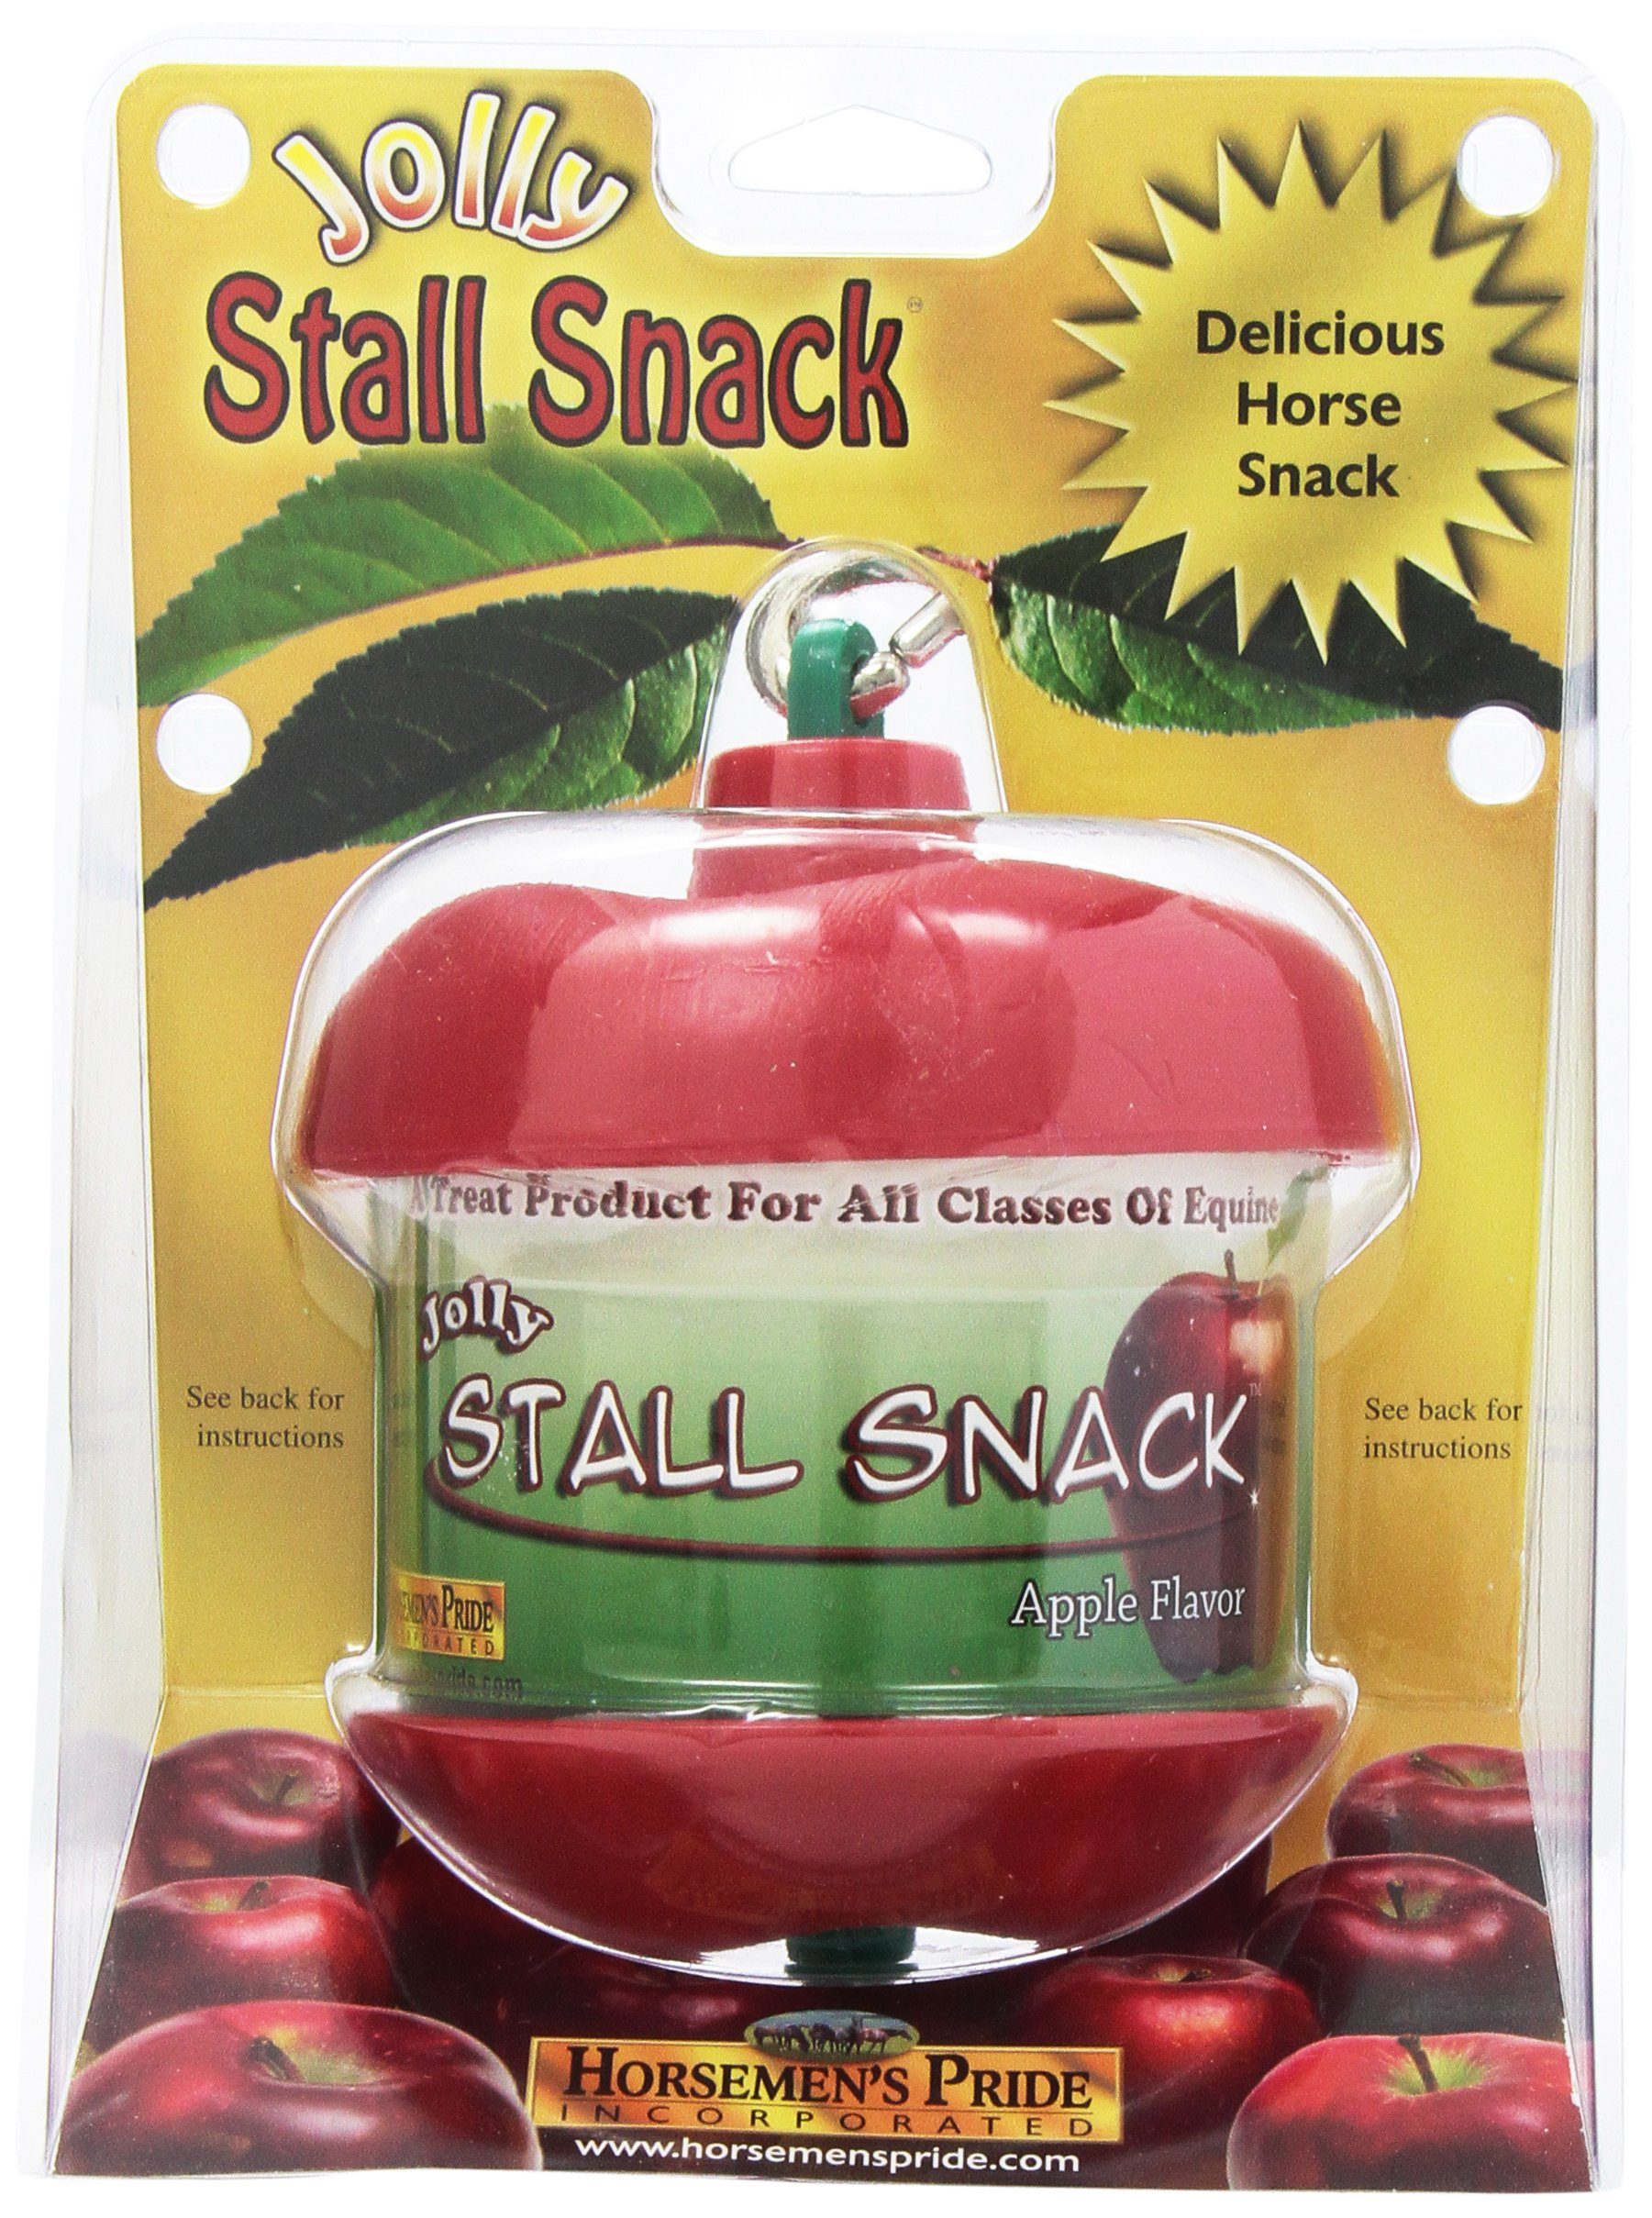 Horsemen's Pride Stall Snack Holder with Apple flavored refill